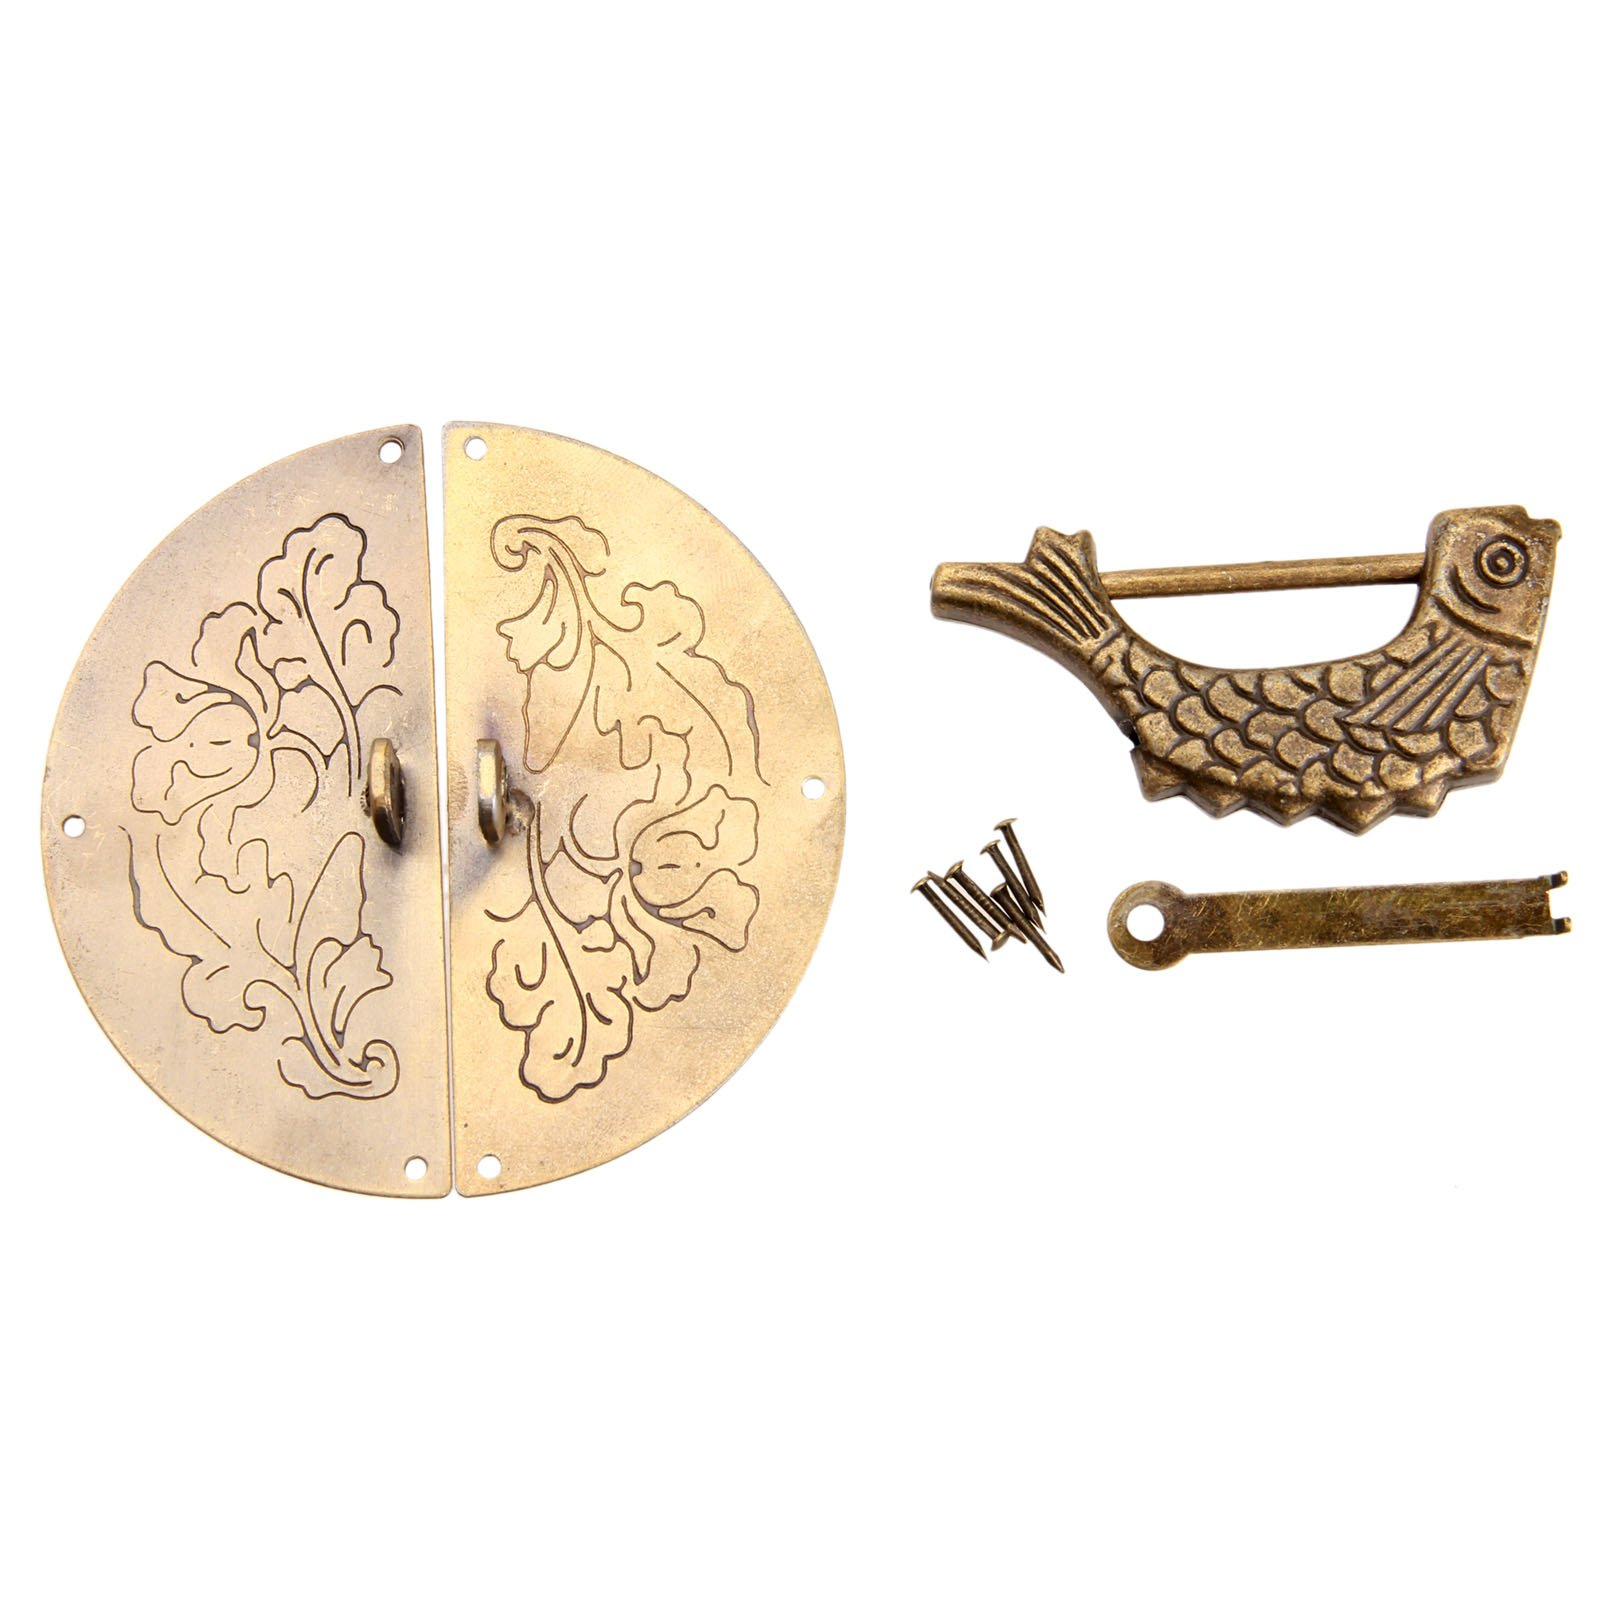 Dophee 1Set Chinese Old Jewelry Box Chest Door Knock Pull Handle Hasp Latch and Fish Lock